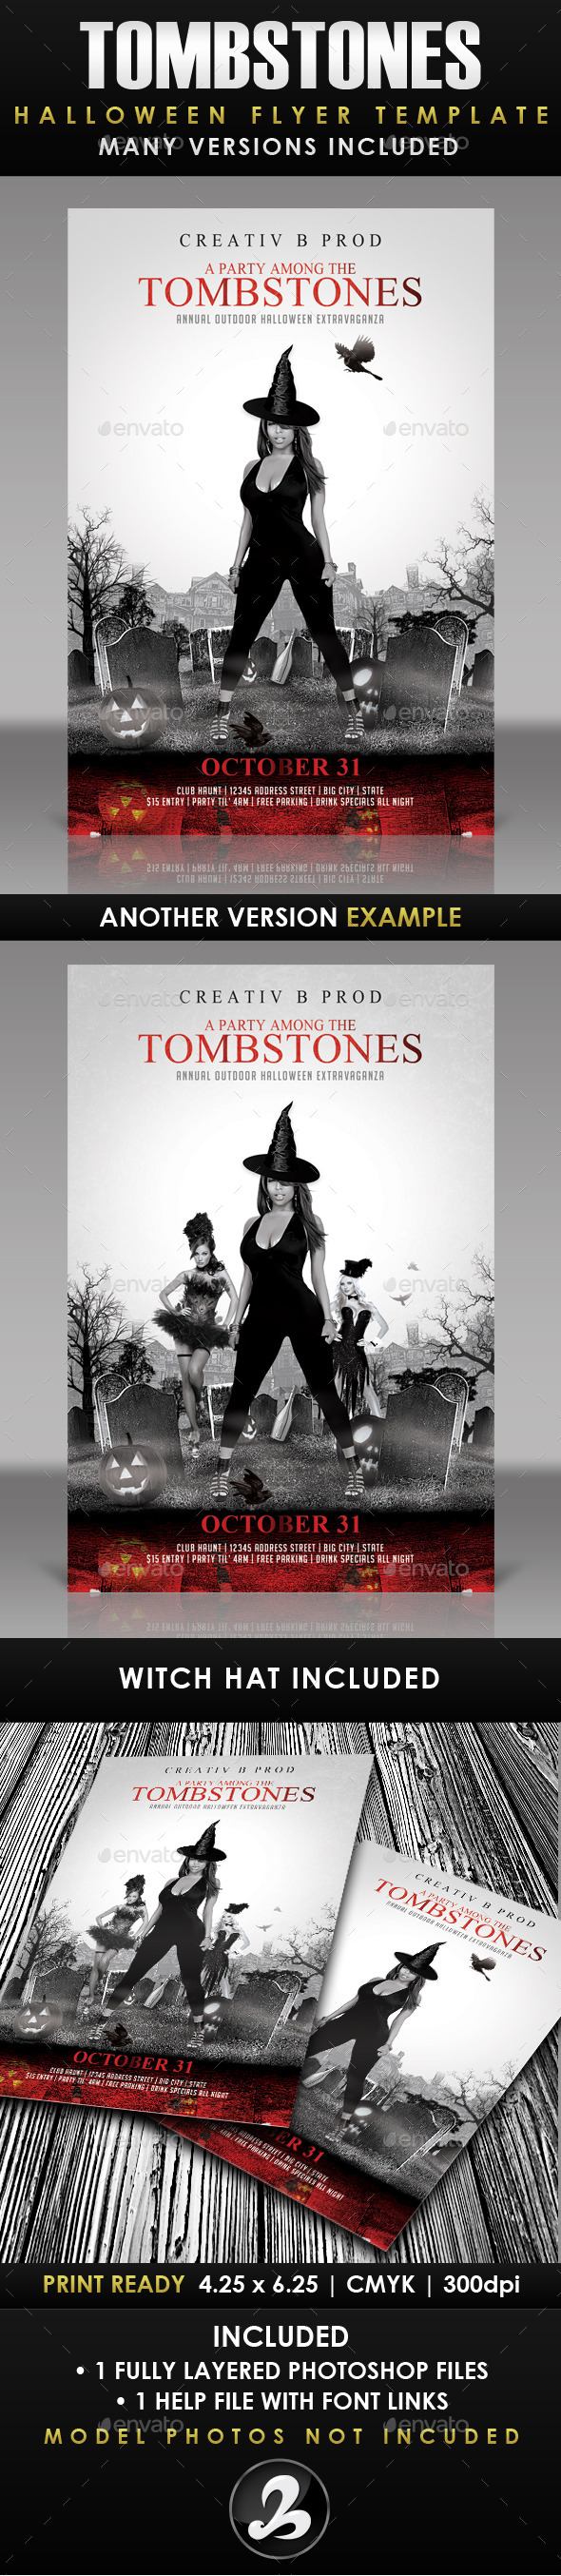 GraphicRiver A Party Among Tombstones Halloween Flyer Template 8809512